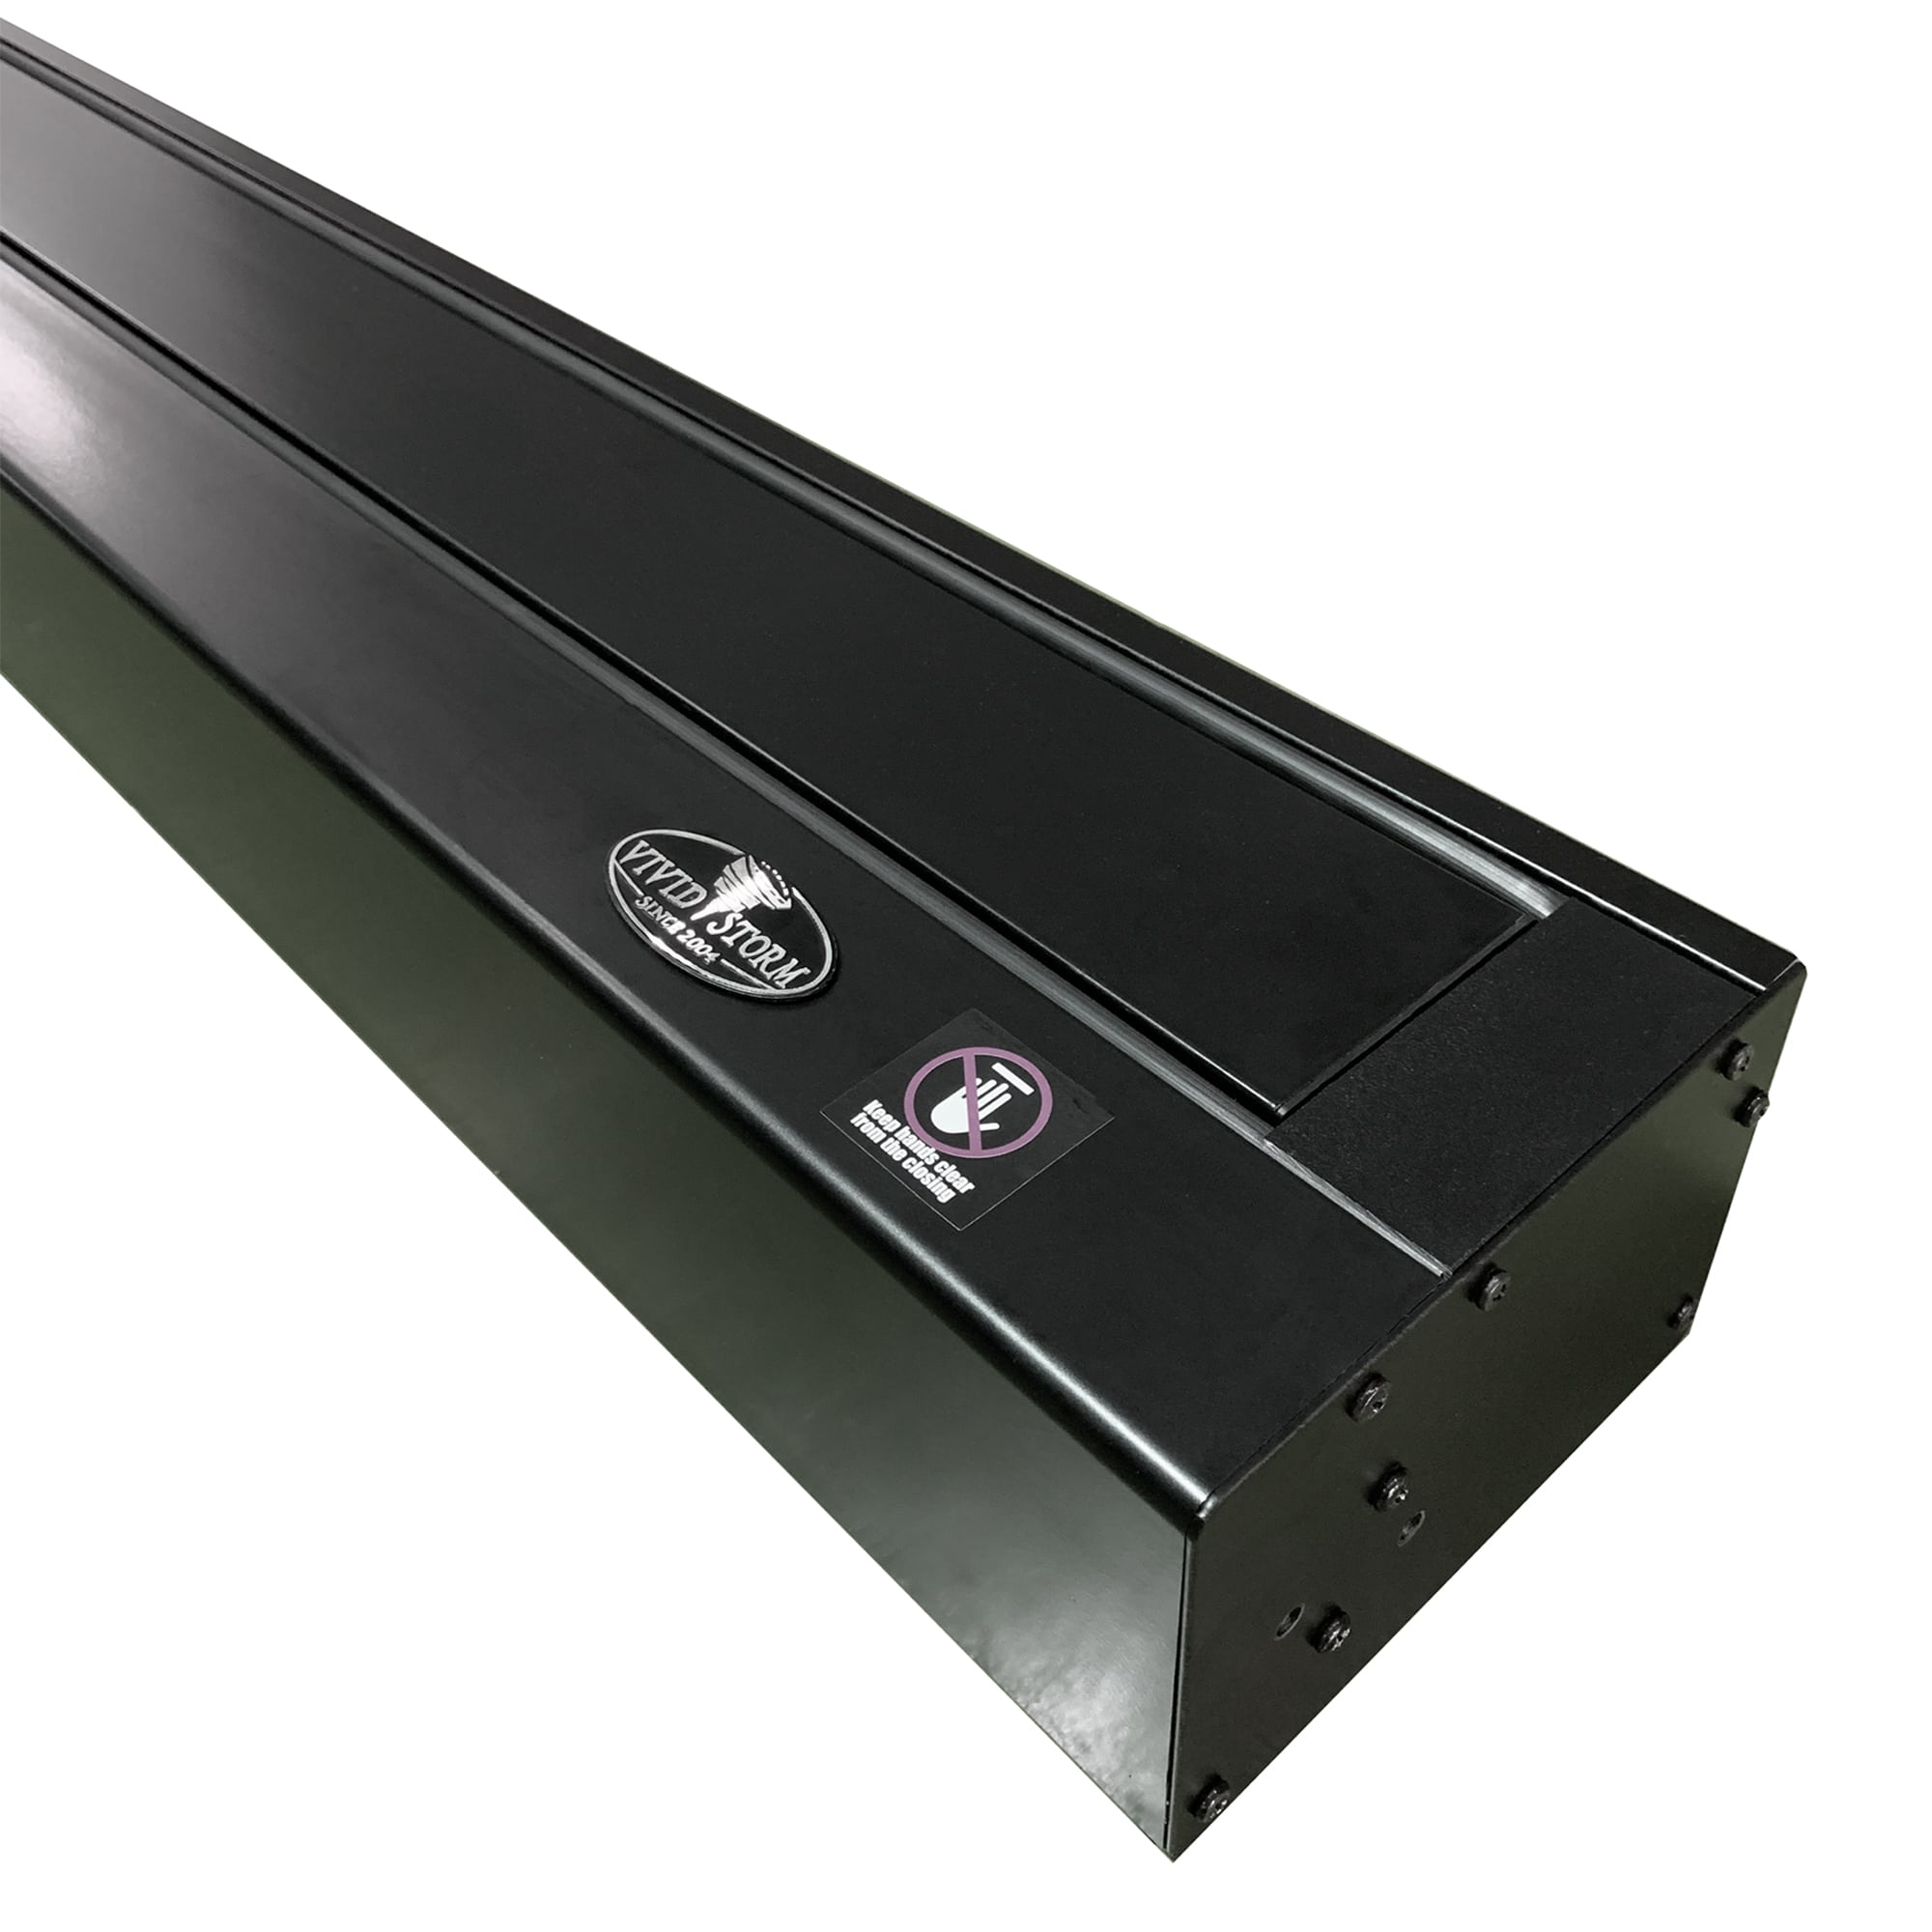 VividStorm S Electric Tension Obsidian ALR Floor Rising Screen for Short/Standard/Long Throw Projectors